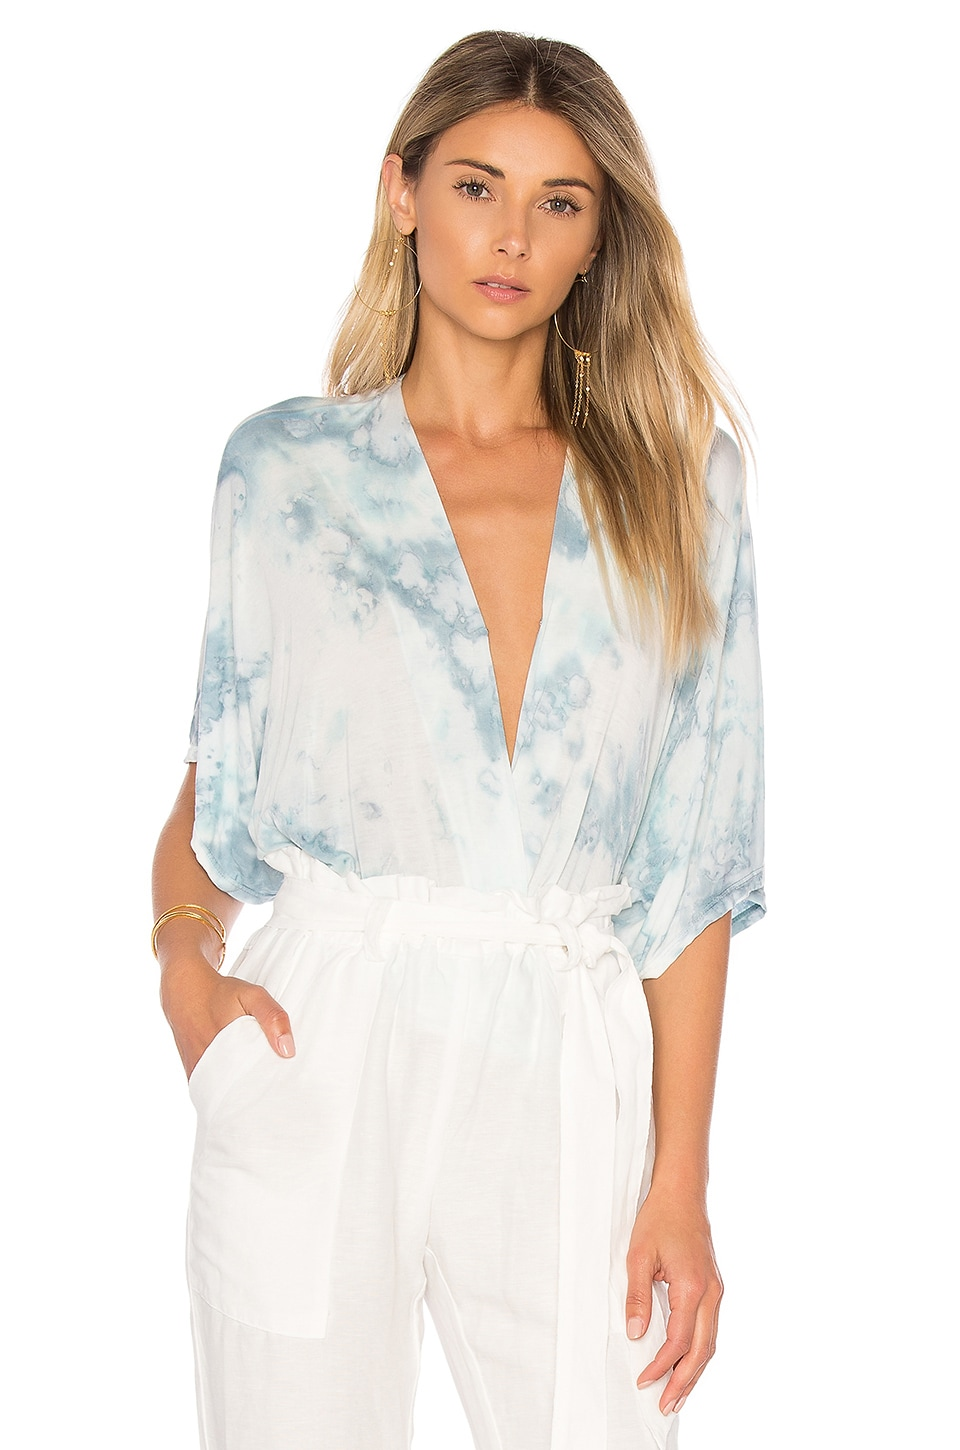 Selby Blouse by Young, Fabulous & Broke